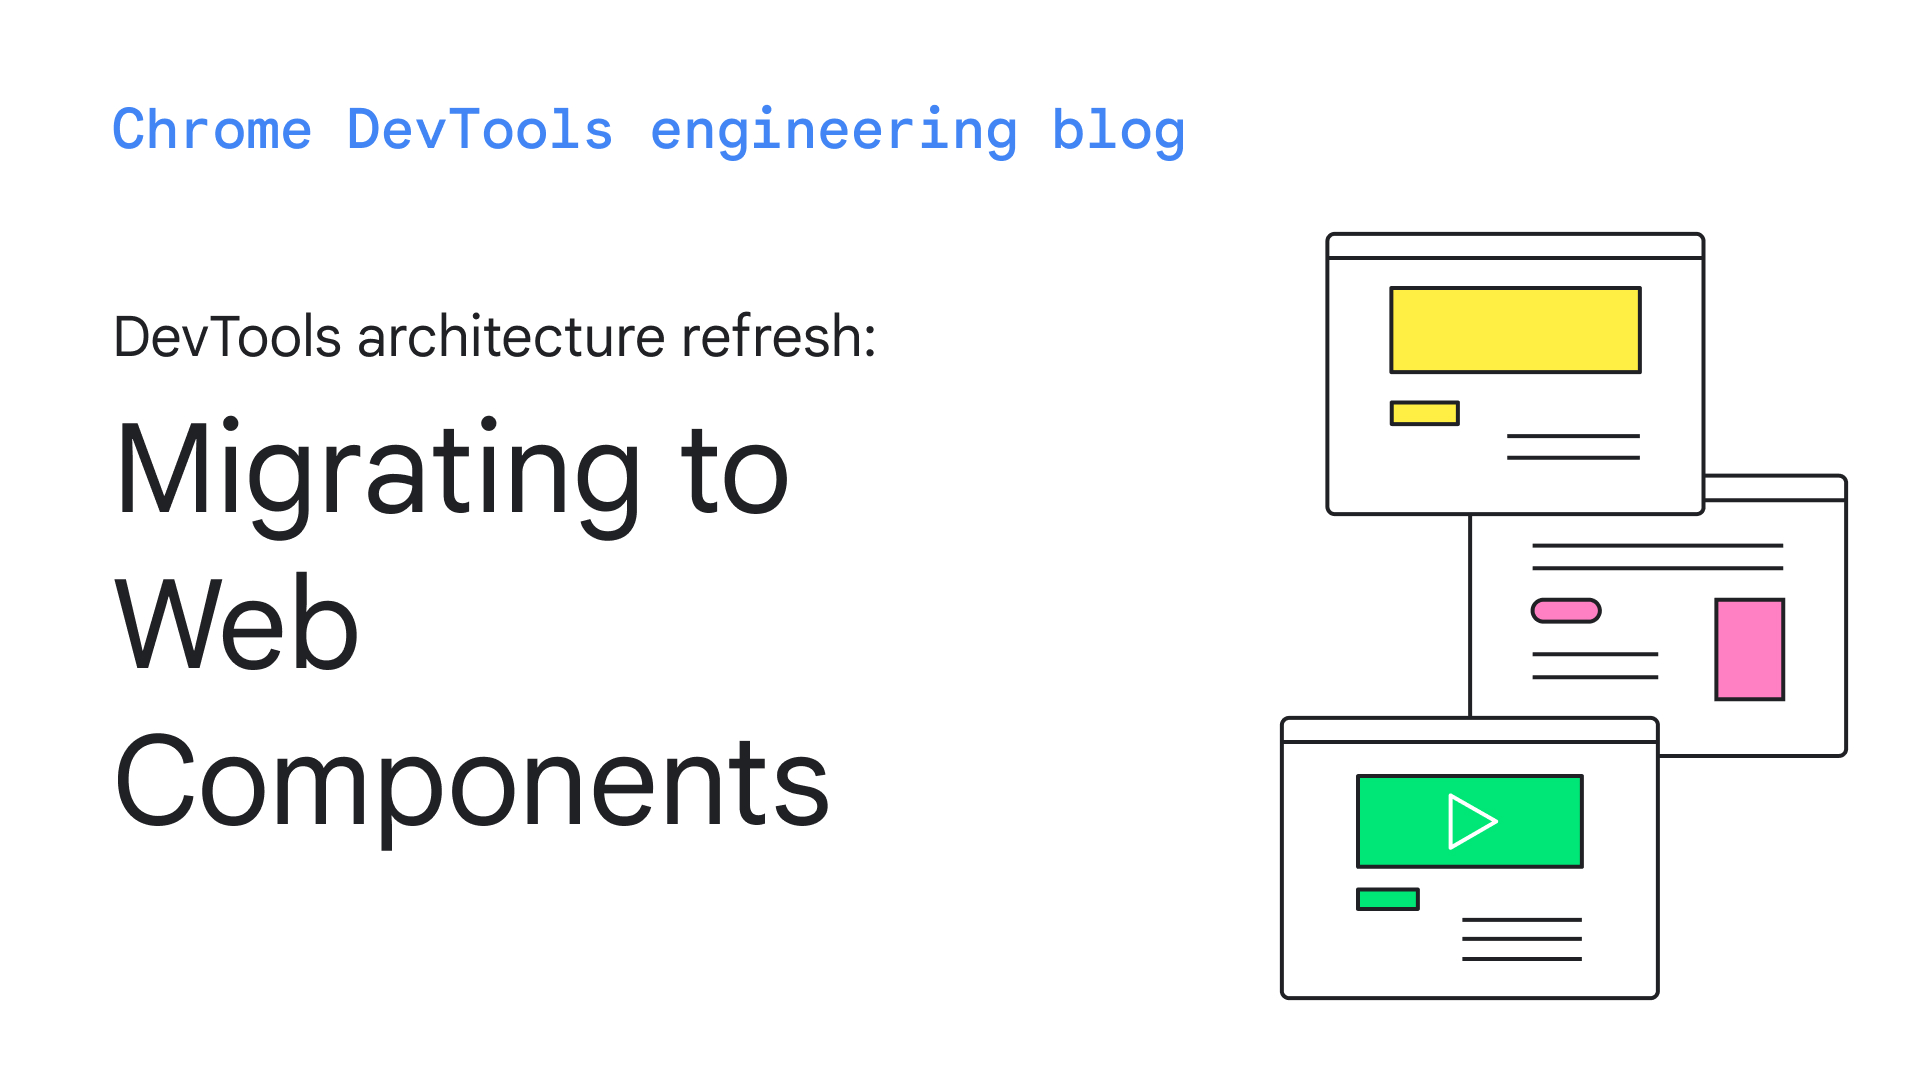 DevTools architecture refresh: migrating to Web Components